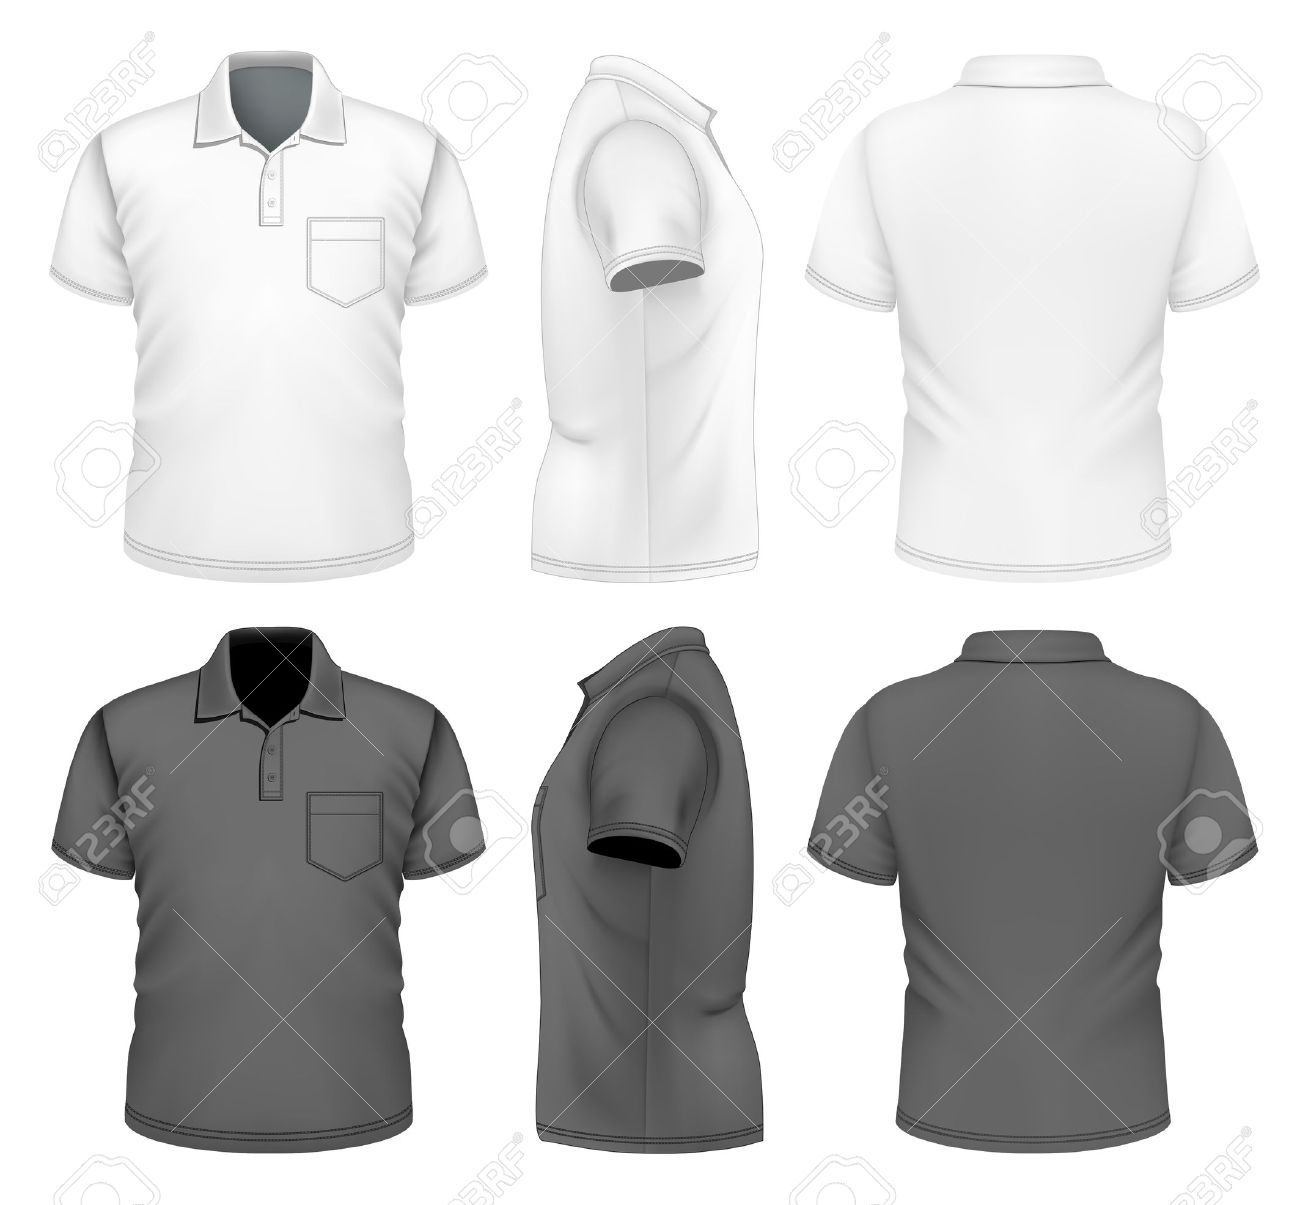 Men\'s Polo-shirt Design Template Royalty Free Cliparts, Vectors, And ...